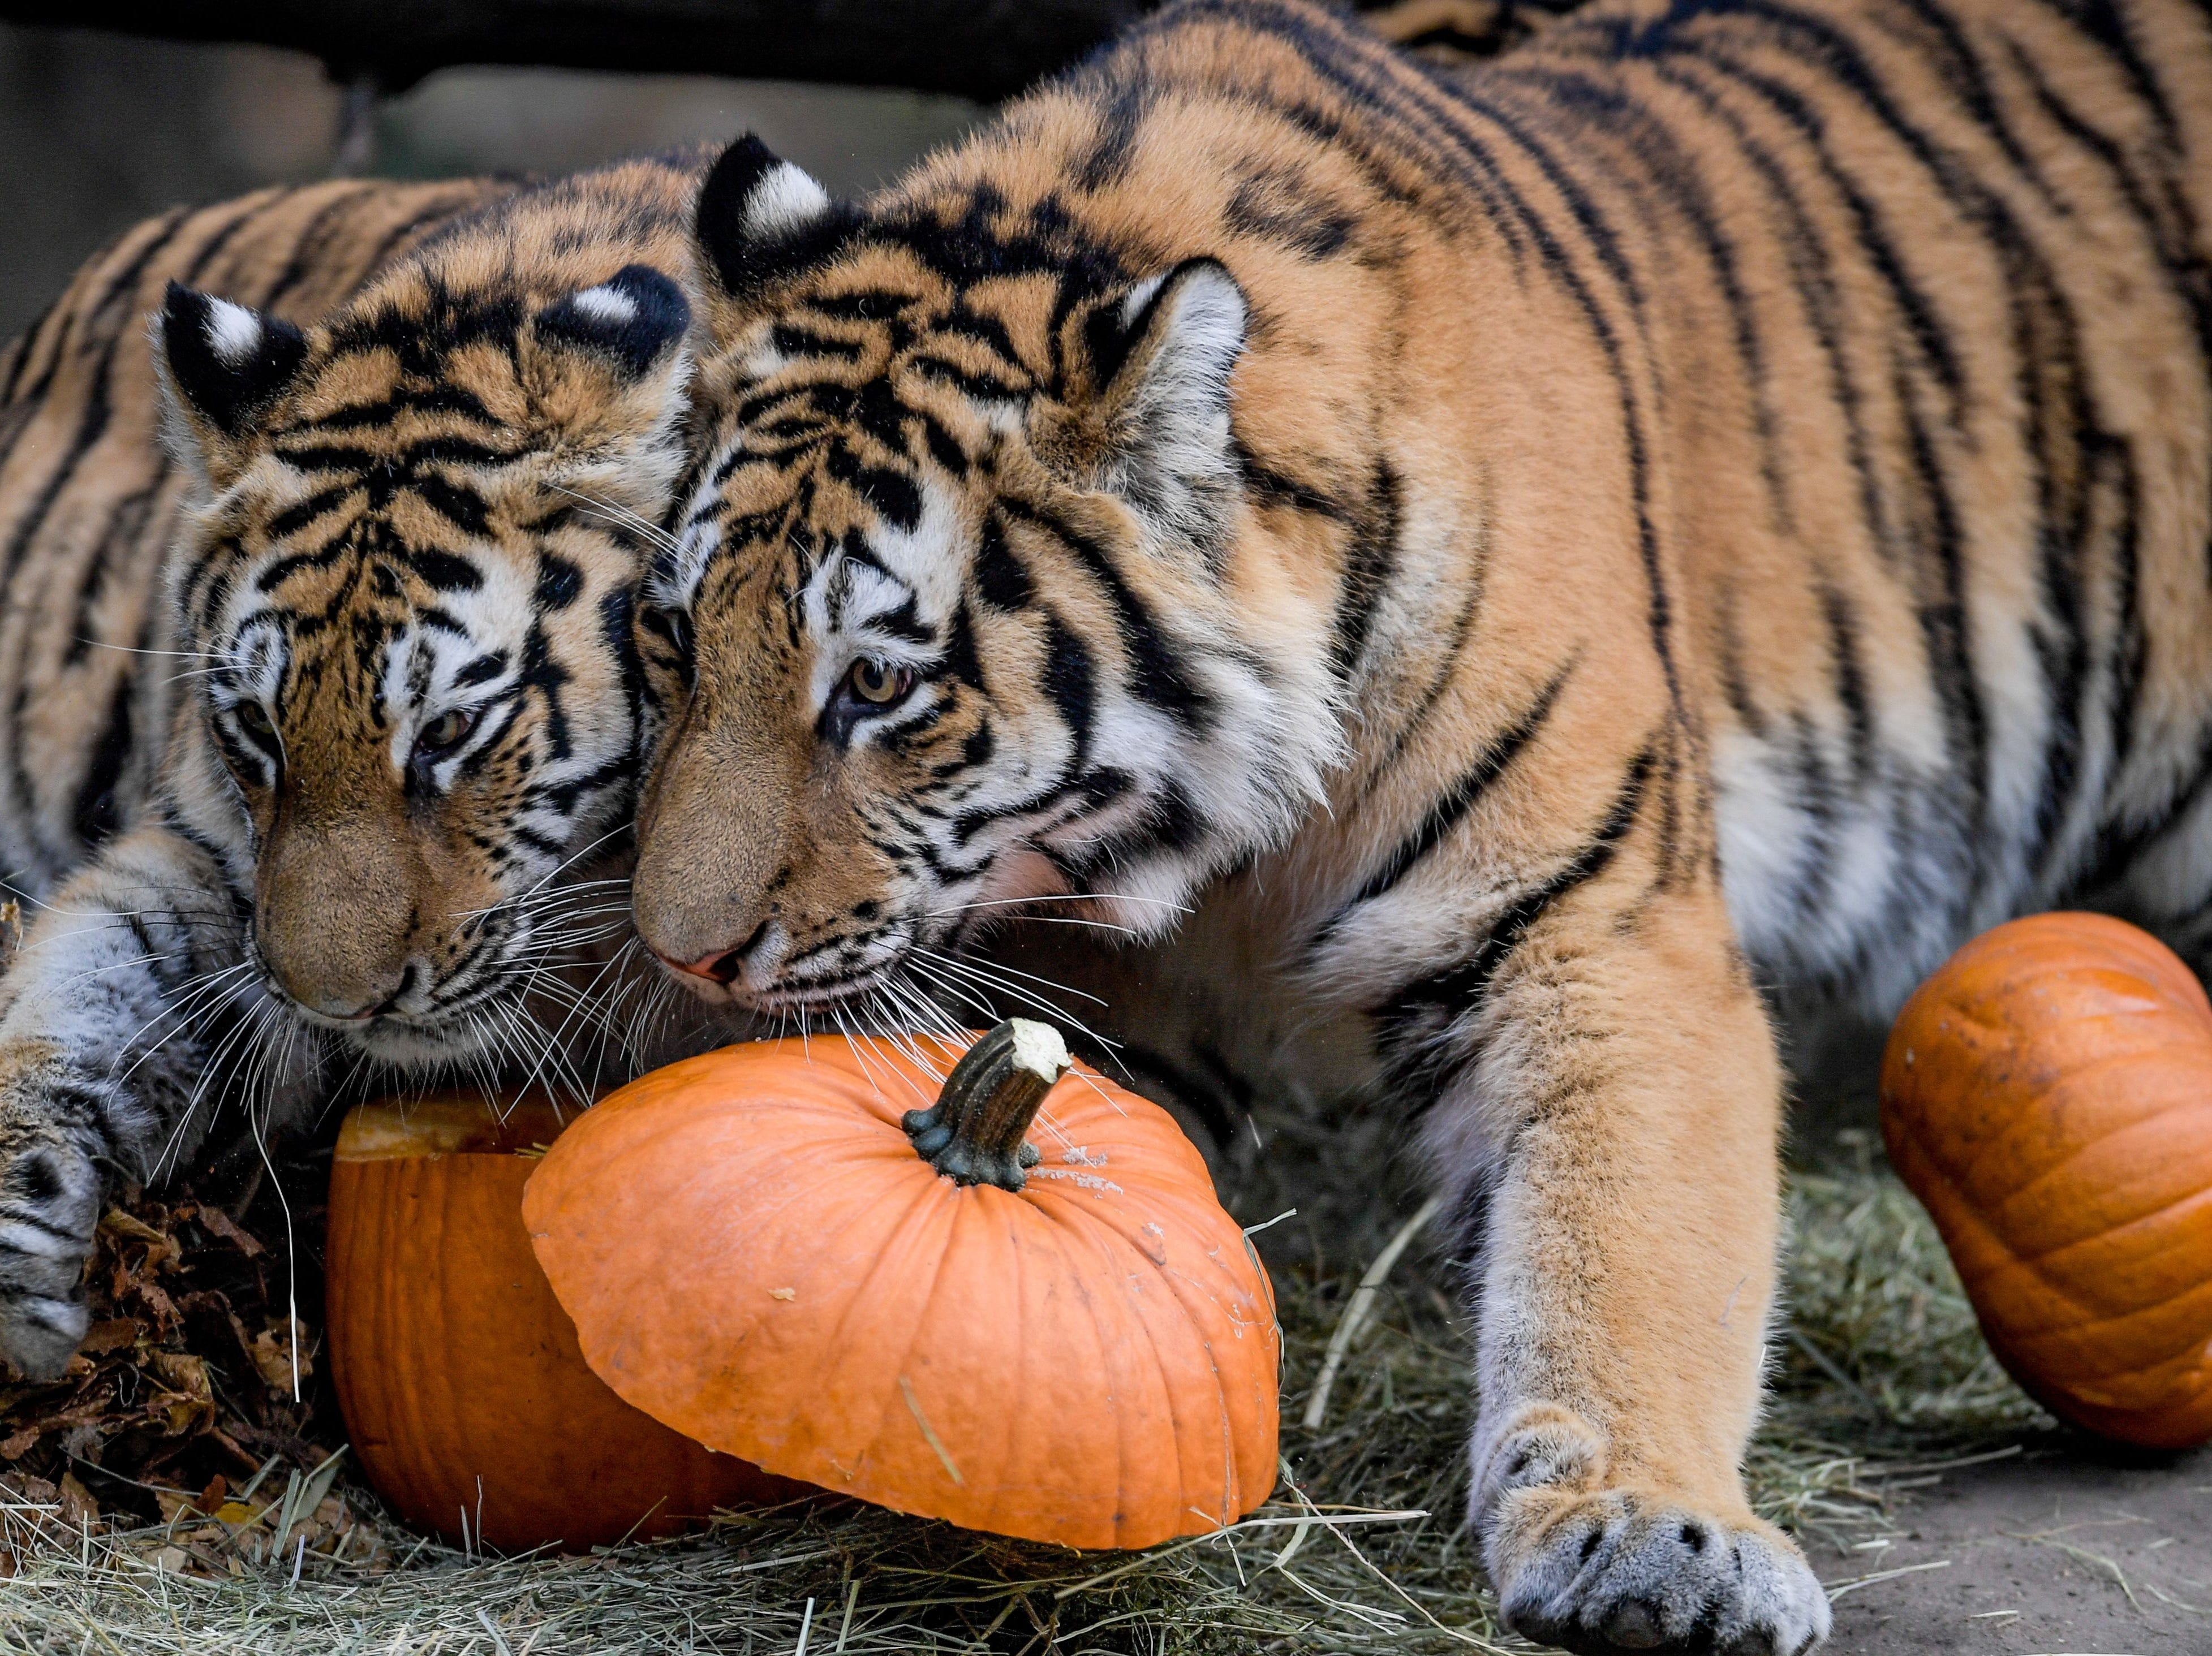 Two Siberian tigers inspect pumpkins filled with meat on September 27, 2018, at the Tierpark Hagenbeck zoo in Hamburg, northern Germany.